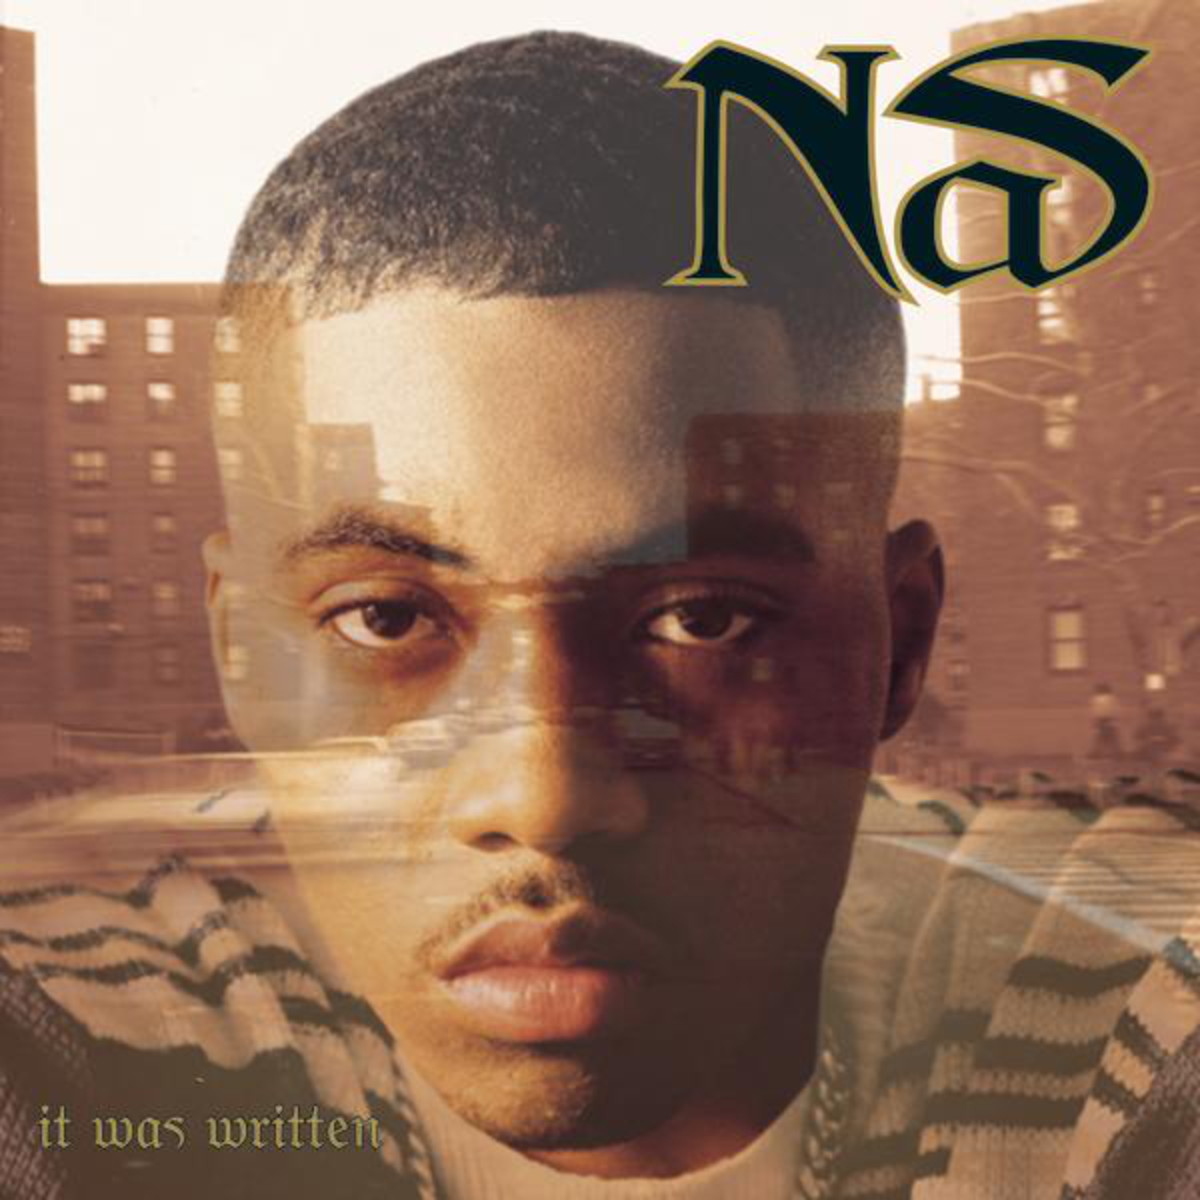 nas it was writen